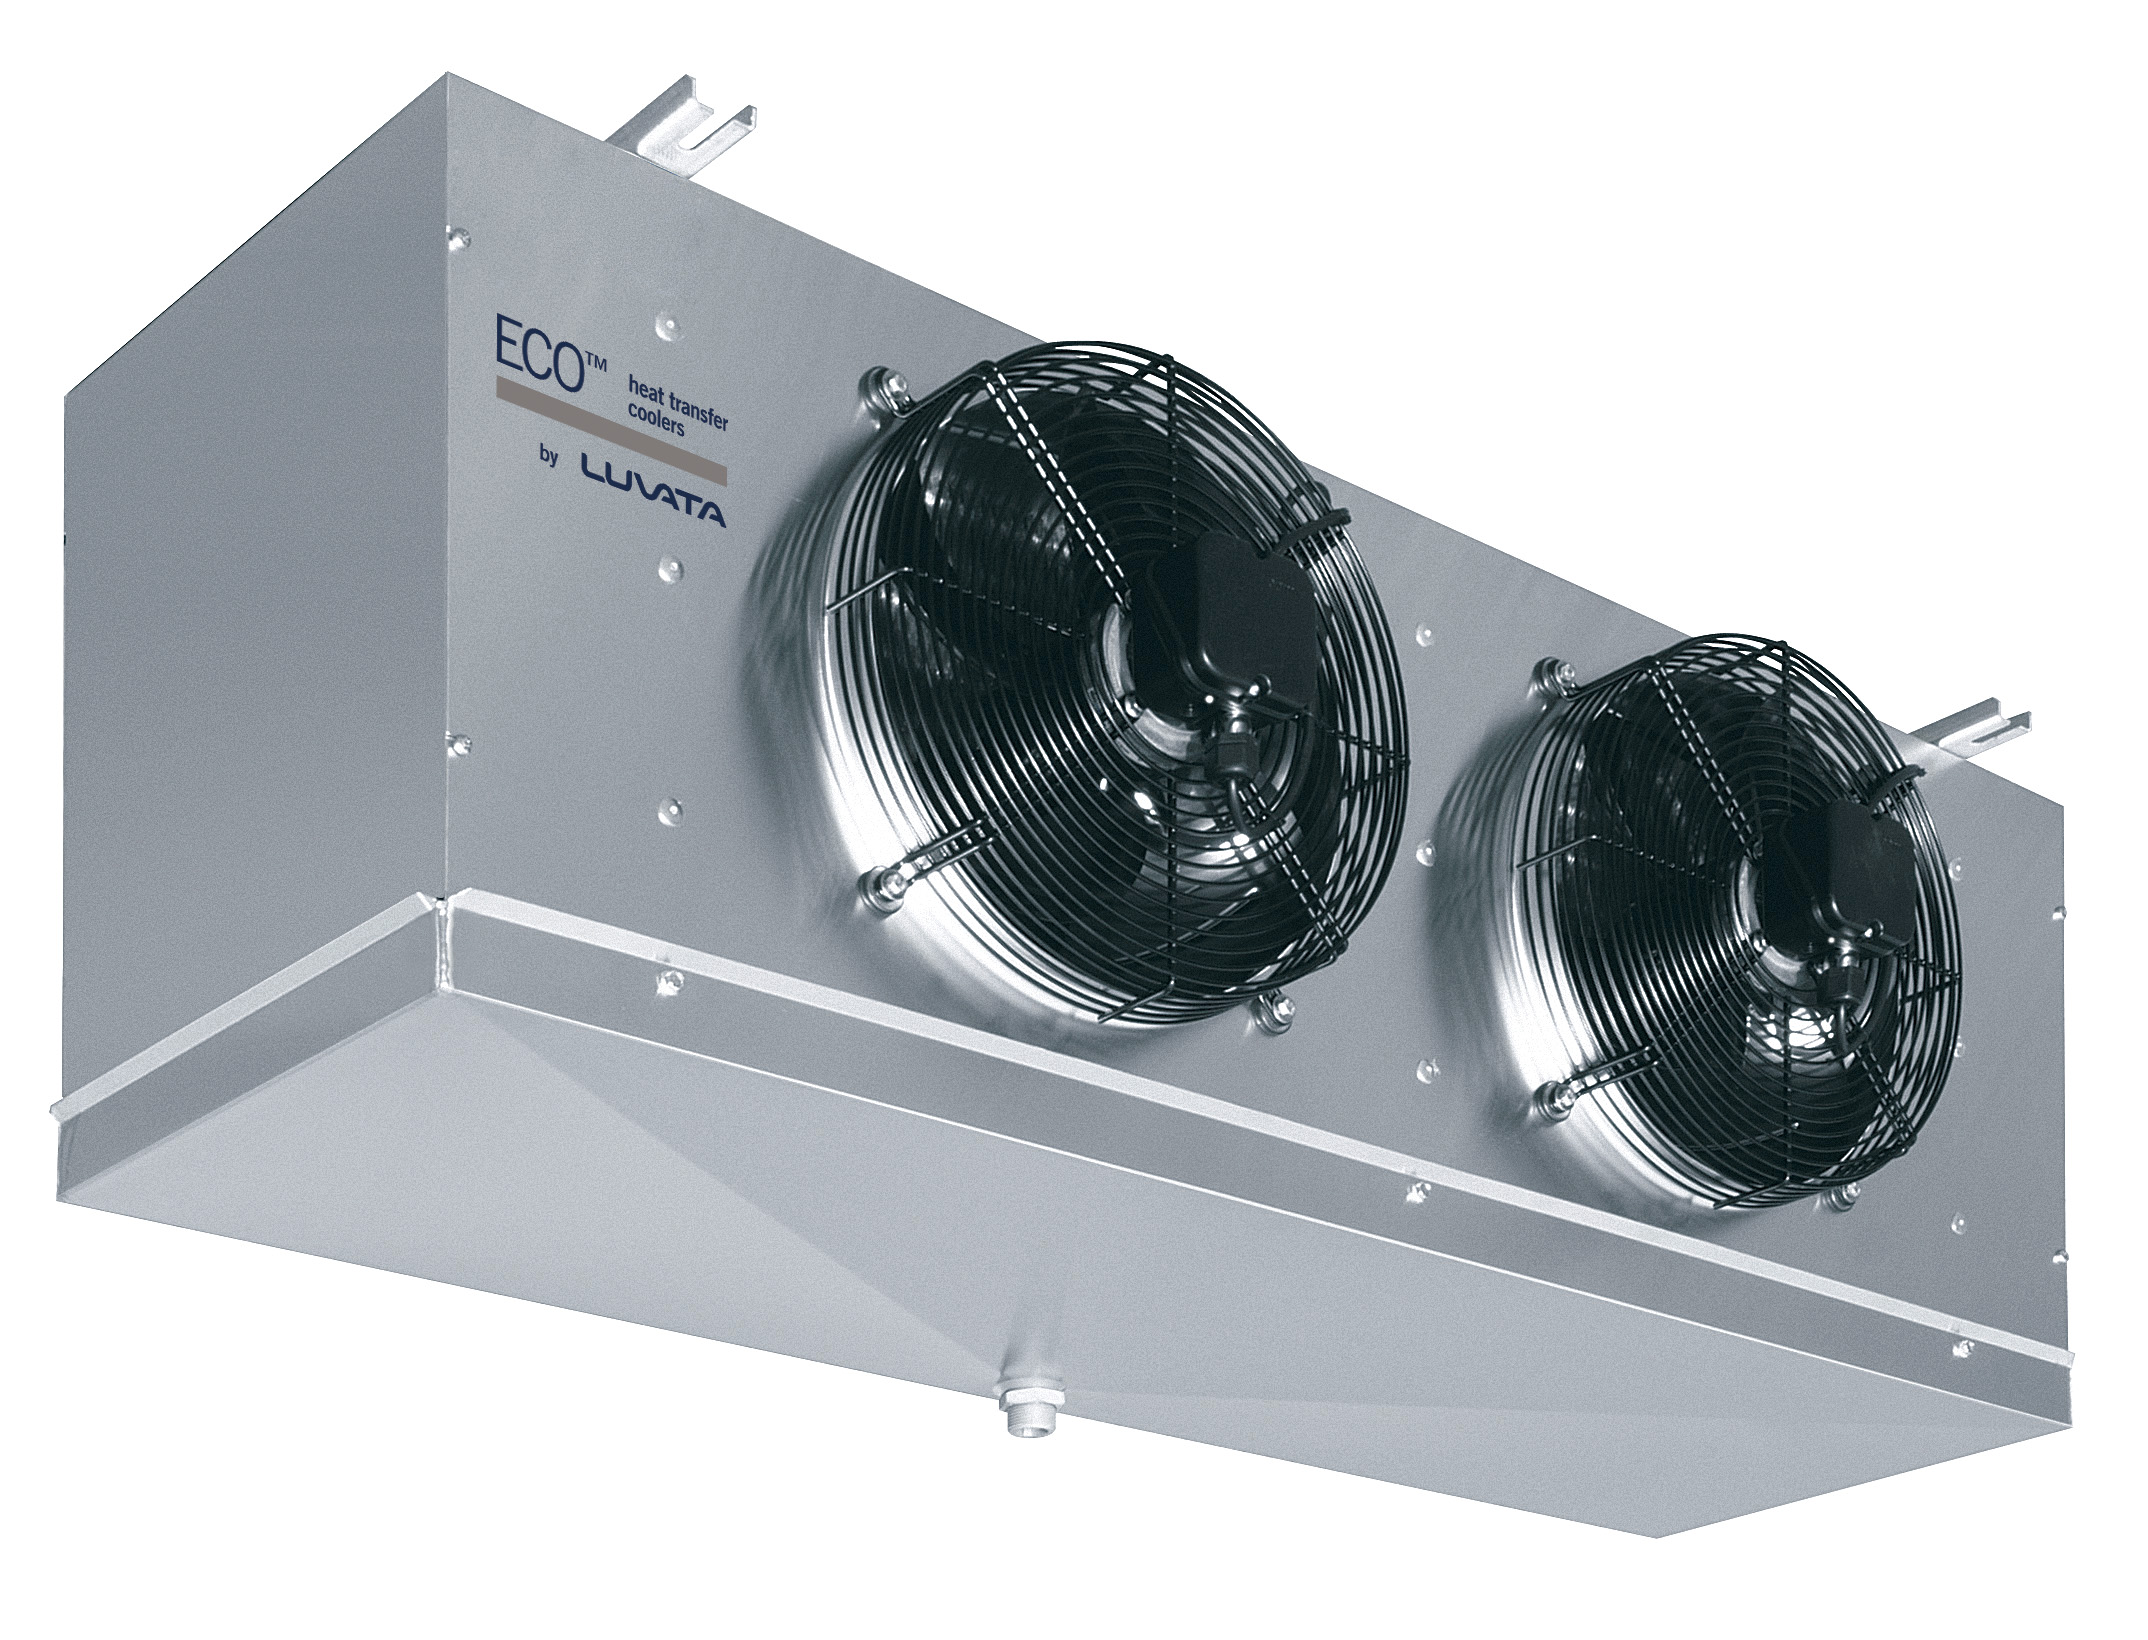 CDC_Cubic unit coolers (C02) for commercial and industrial cold rooms